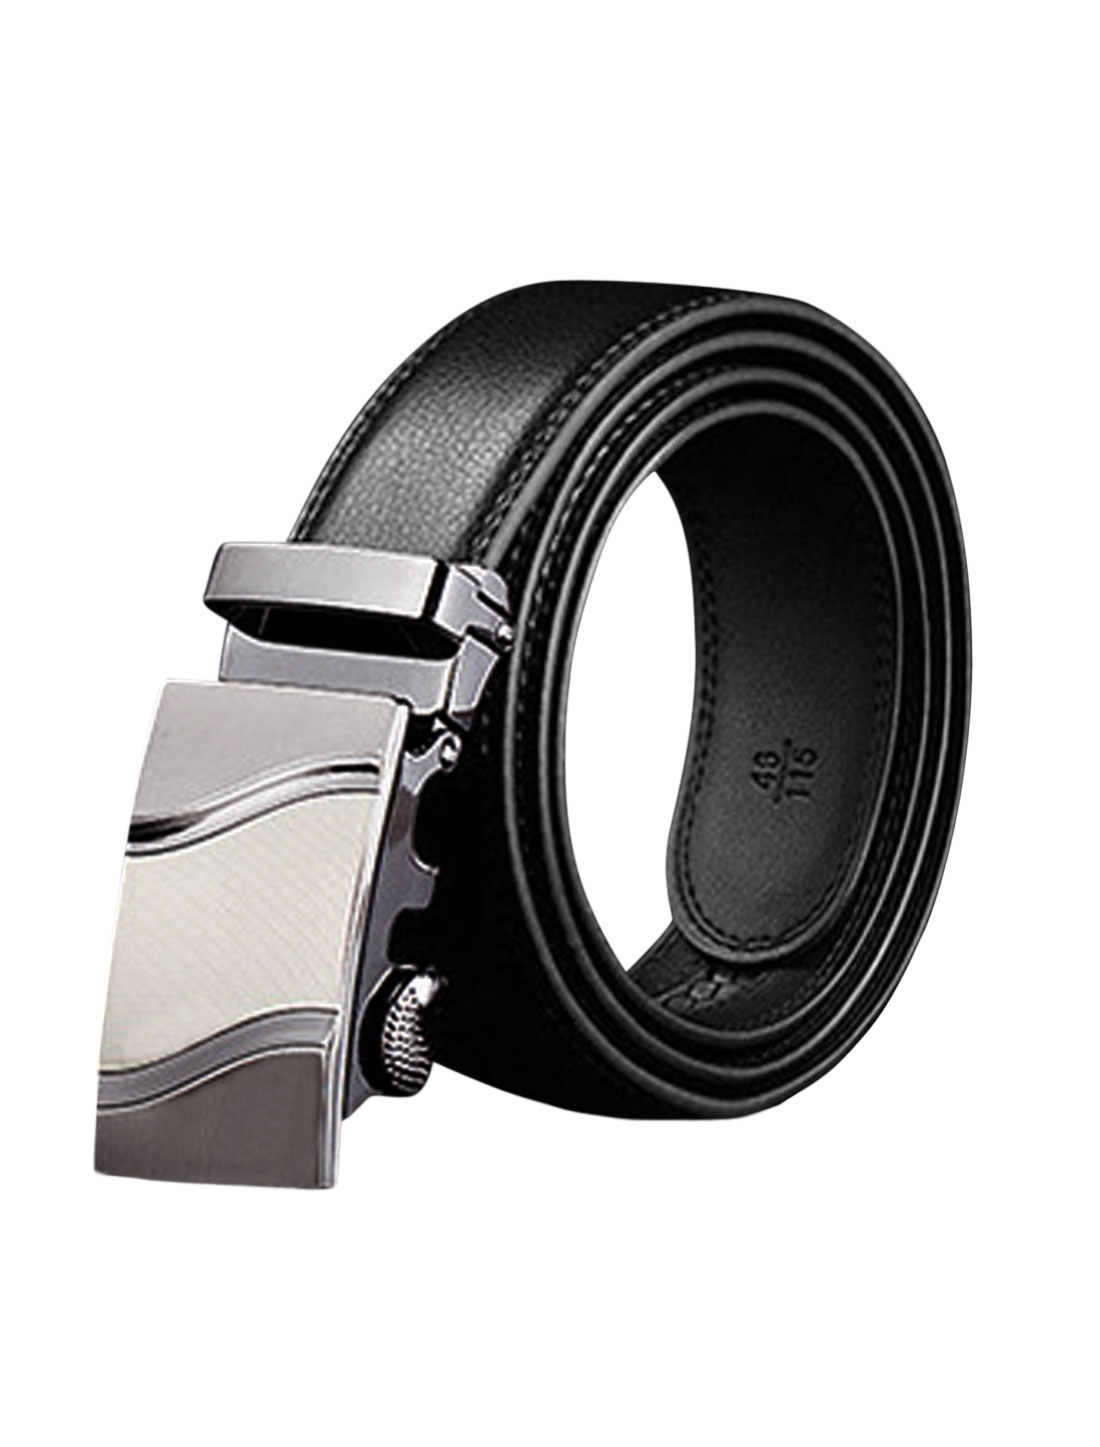 Man Automatic Buckle Holeless Adjustable PU Belt Black 115CM